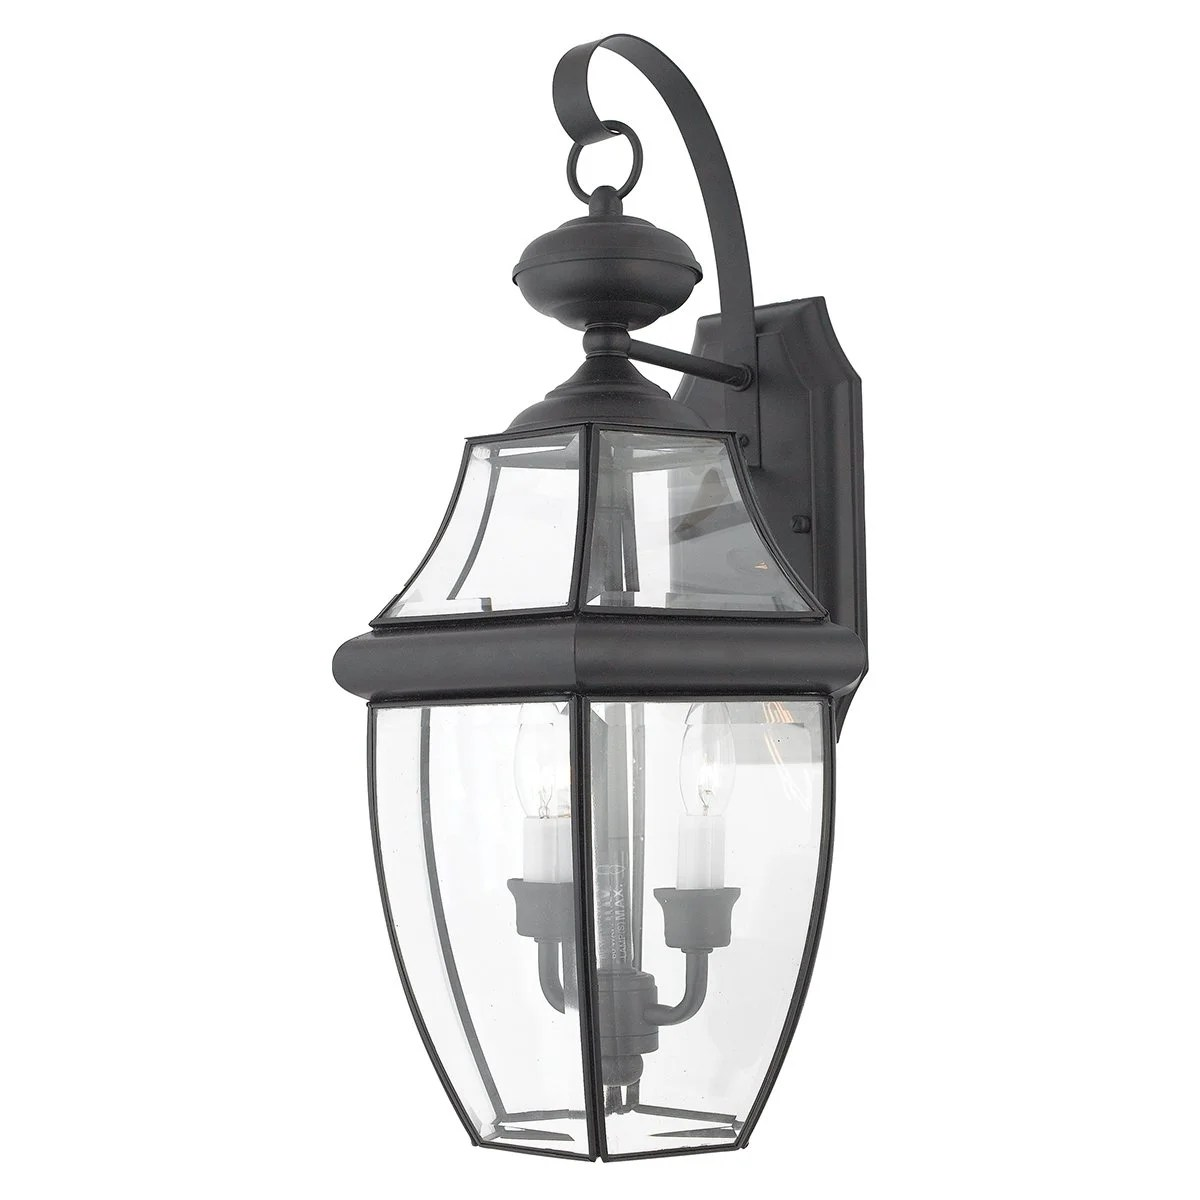 luxury colonial outdoor wall light 20 h x 10 5 w with tudor style versatile design black silk finish 10 5